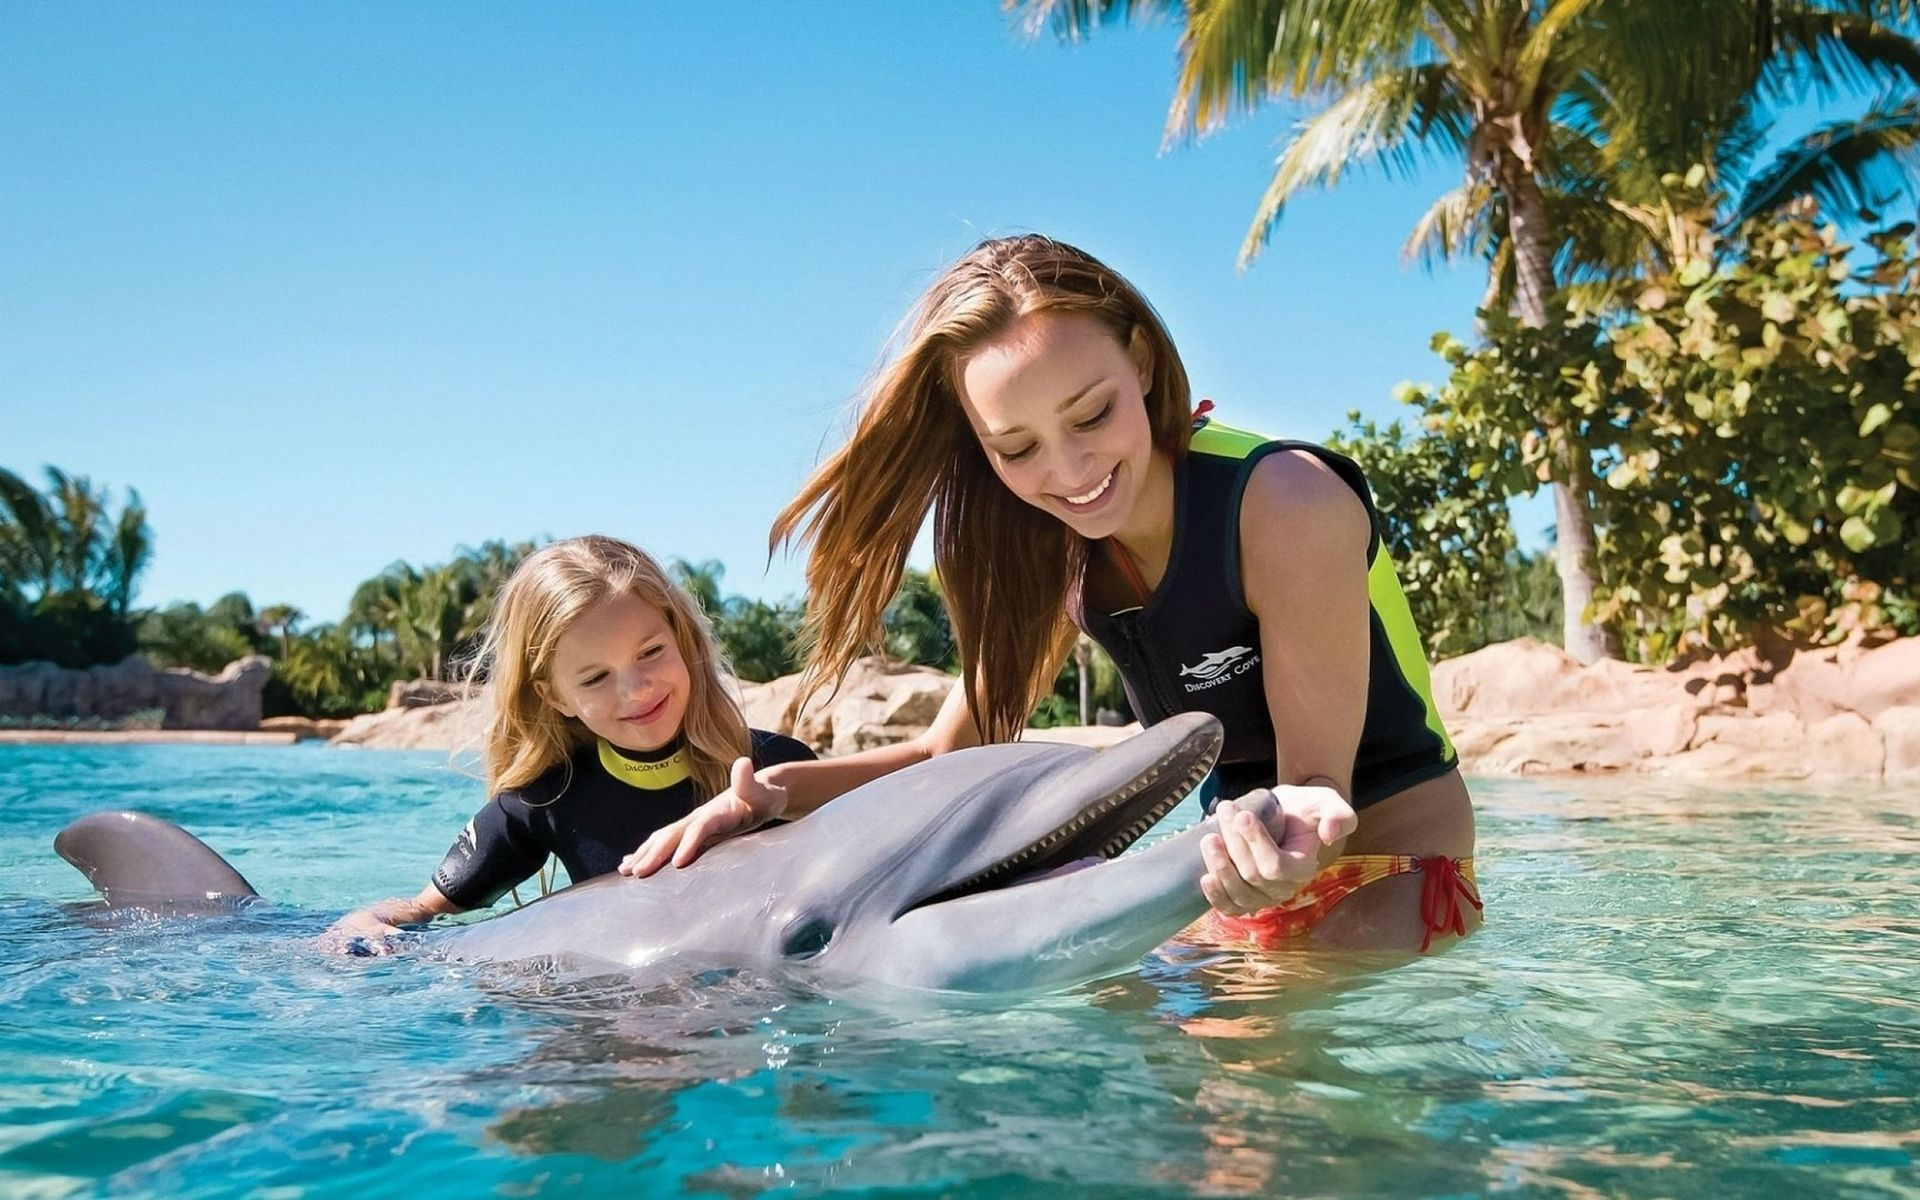 Winfield Homes For Sale Discovery cove, Sea world